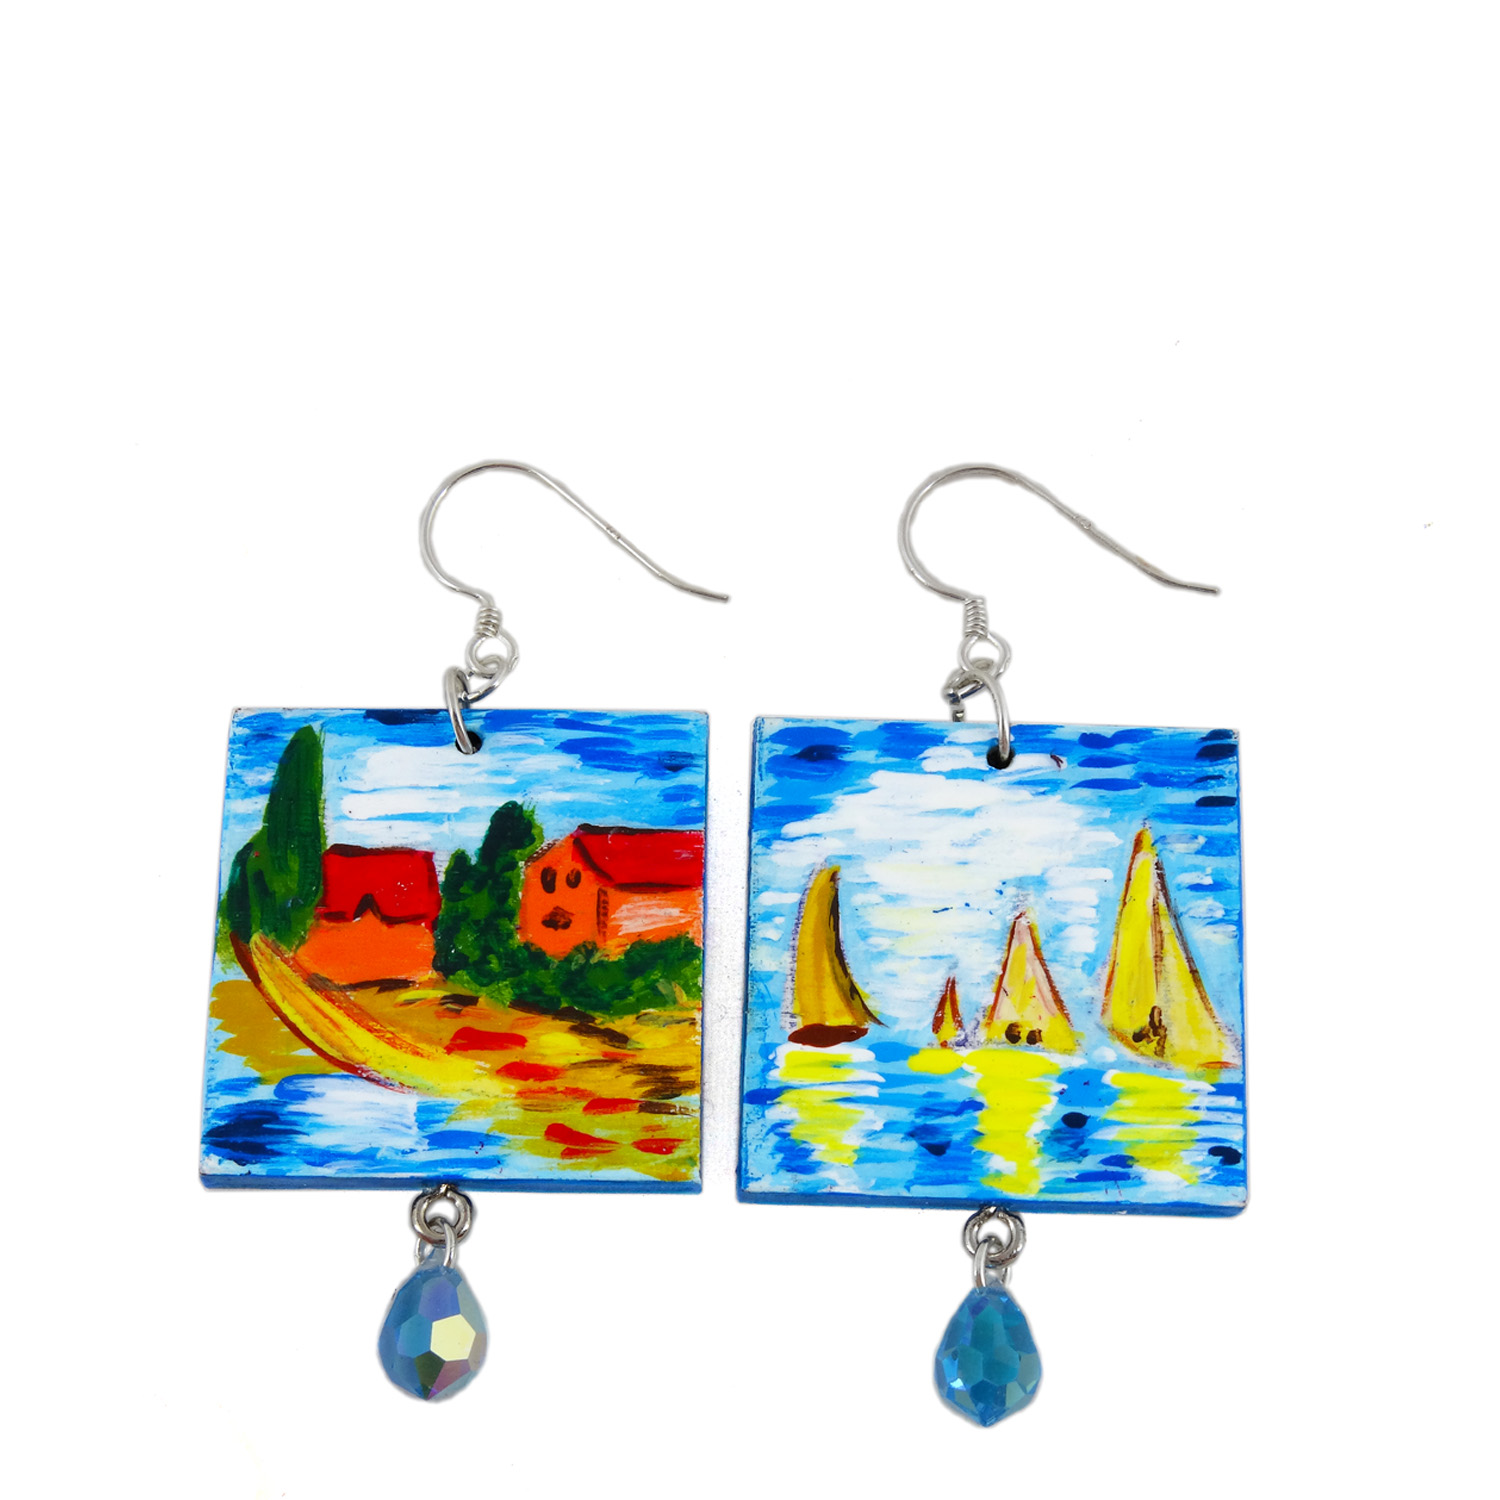 Hand painted earrings - Regatta at Argenteuil by Monet